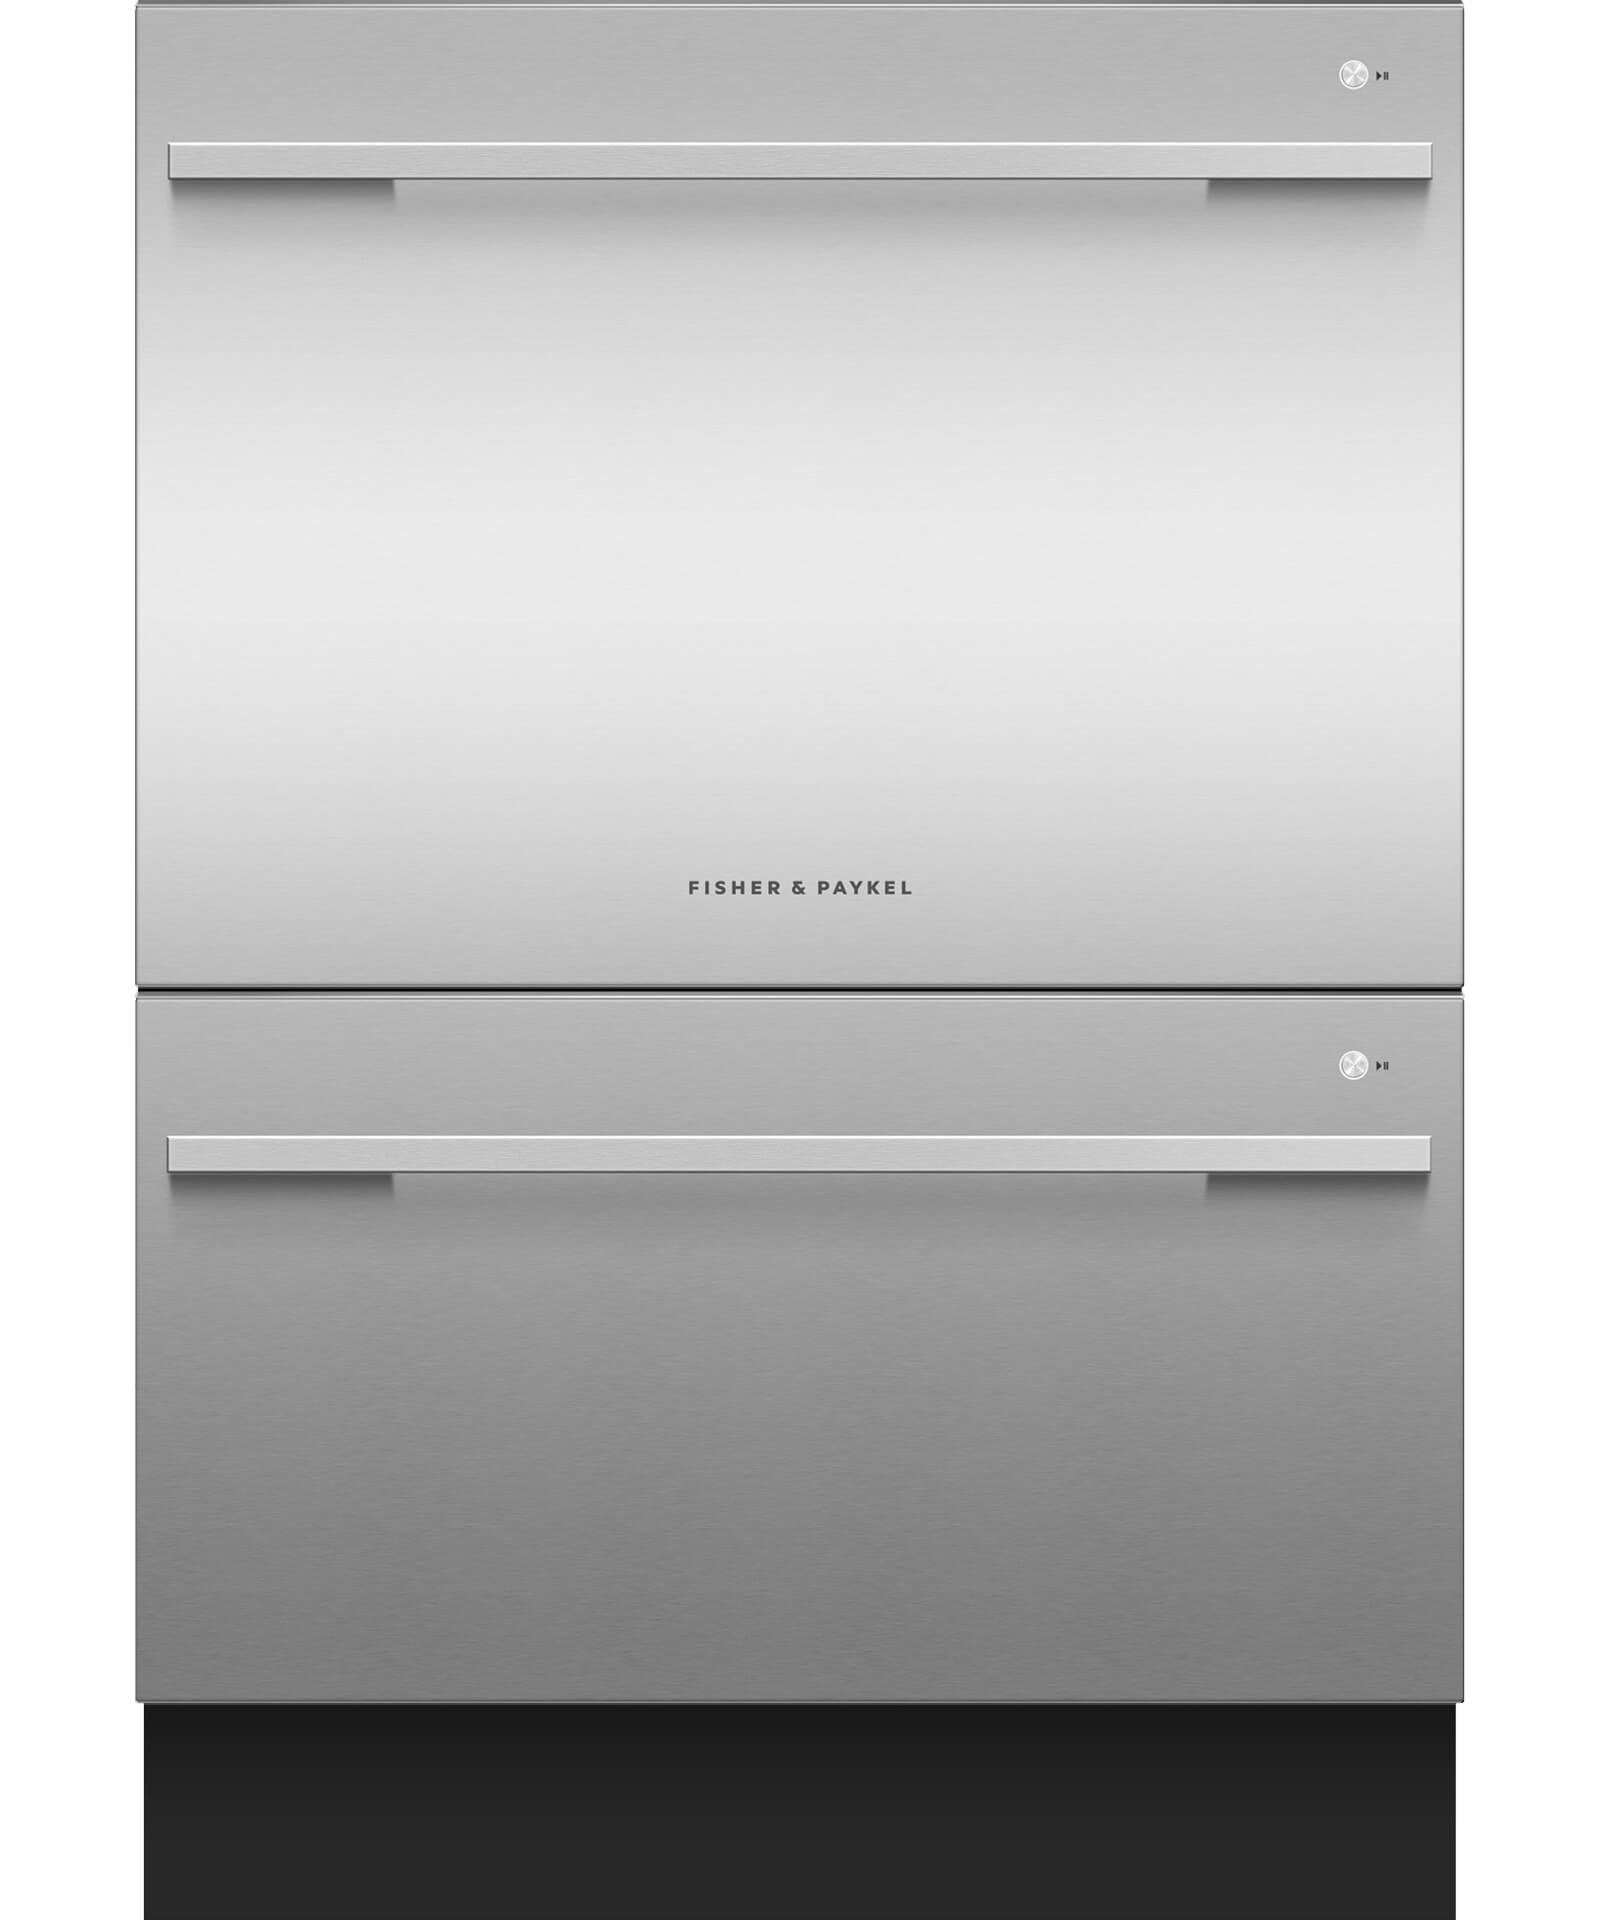 DD24DDFTX9_N - Tall Double DishDrawer™ Dishwasher incl Sanitize, Extra Dry and full flex racking - 81222